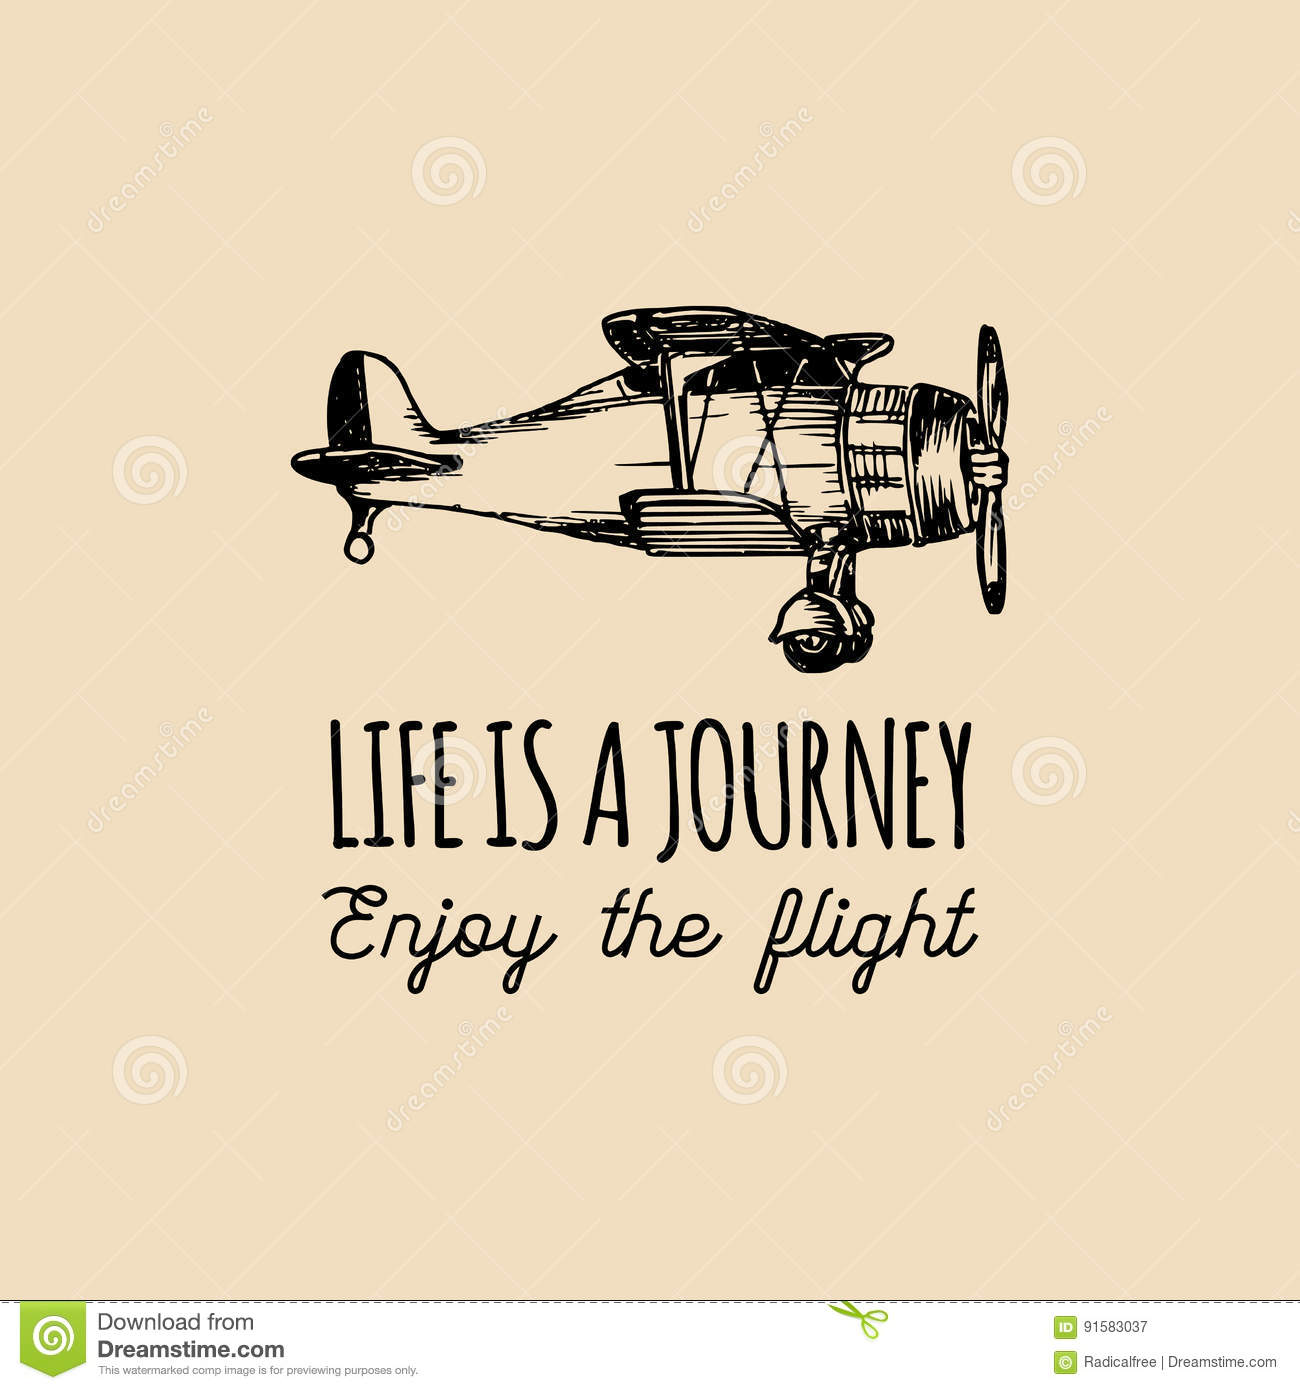 Inspirational Quotes About Life S Journey: Life Is A Journey,enjoy The Flight Motivational Quote